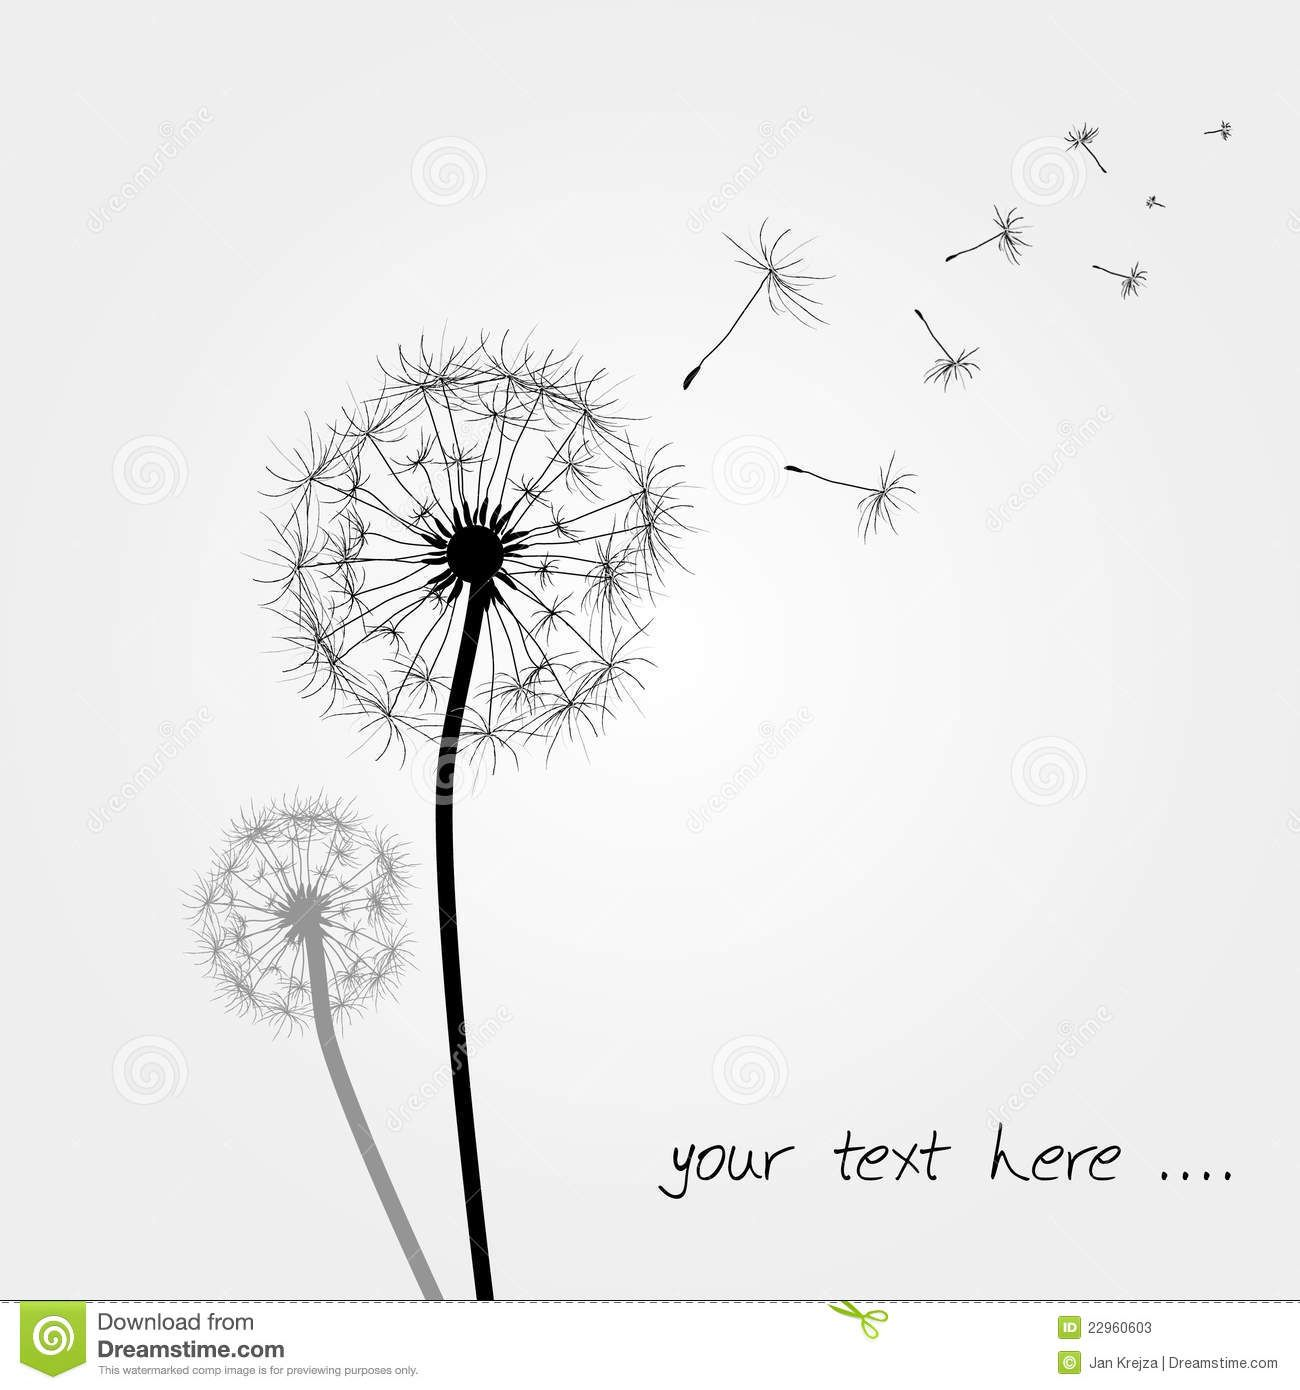 Dandelion clipart flower side. Bird drawing blowing birds